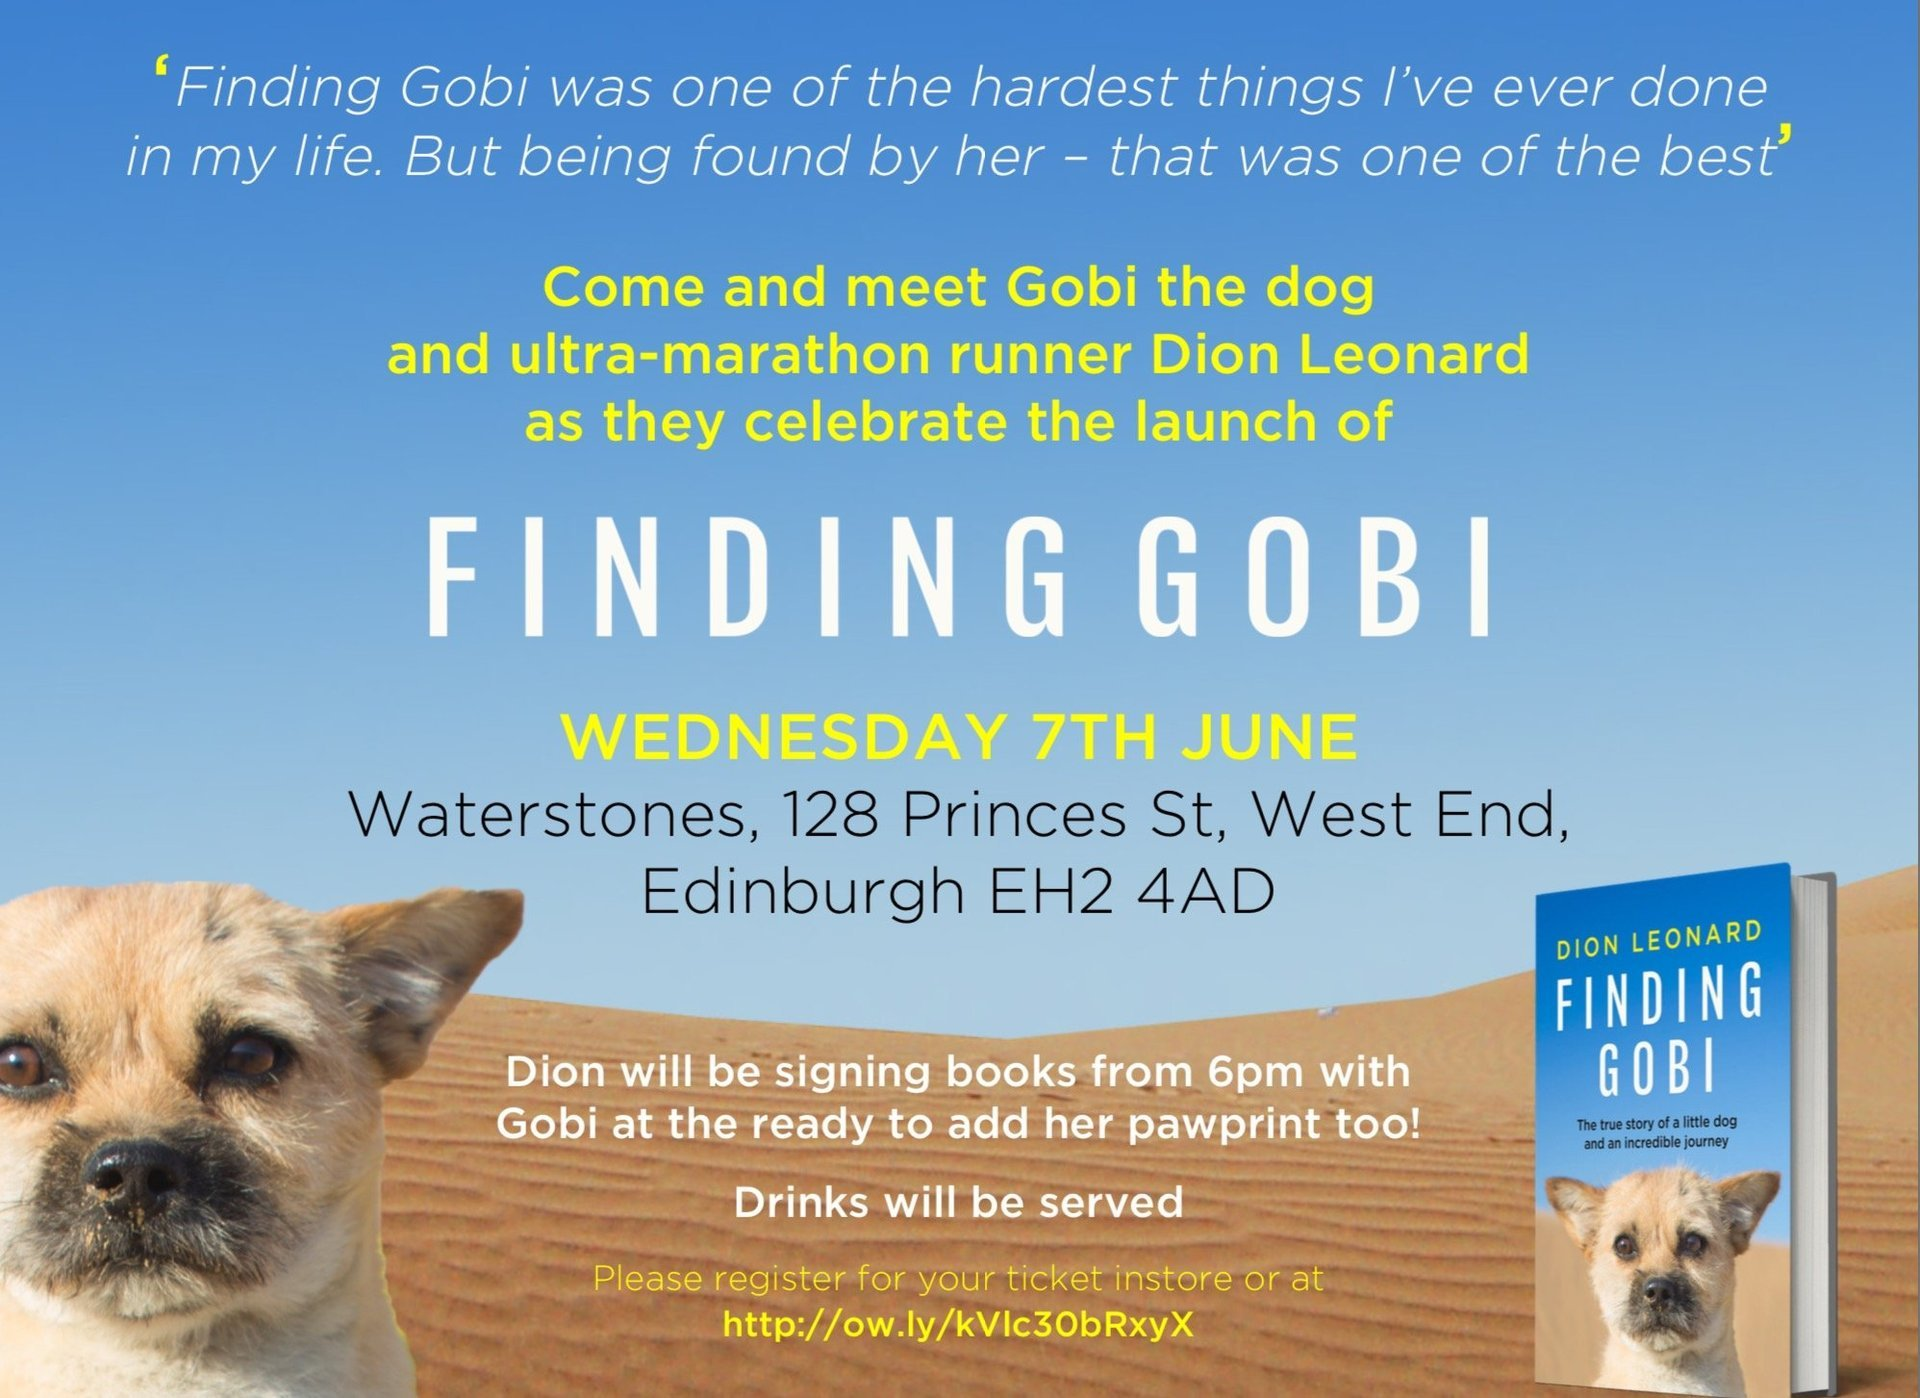 Finding Gobi Launch Event. Meet Dion Leonard and Gobi the Dog in Edinburgh